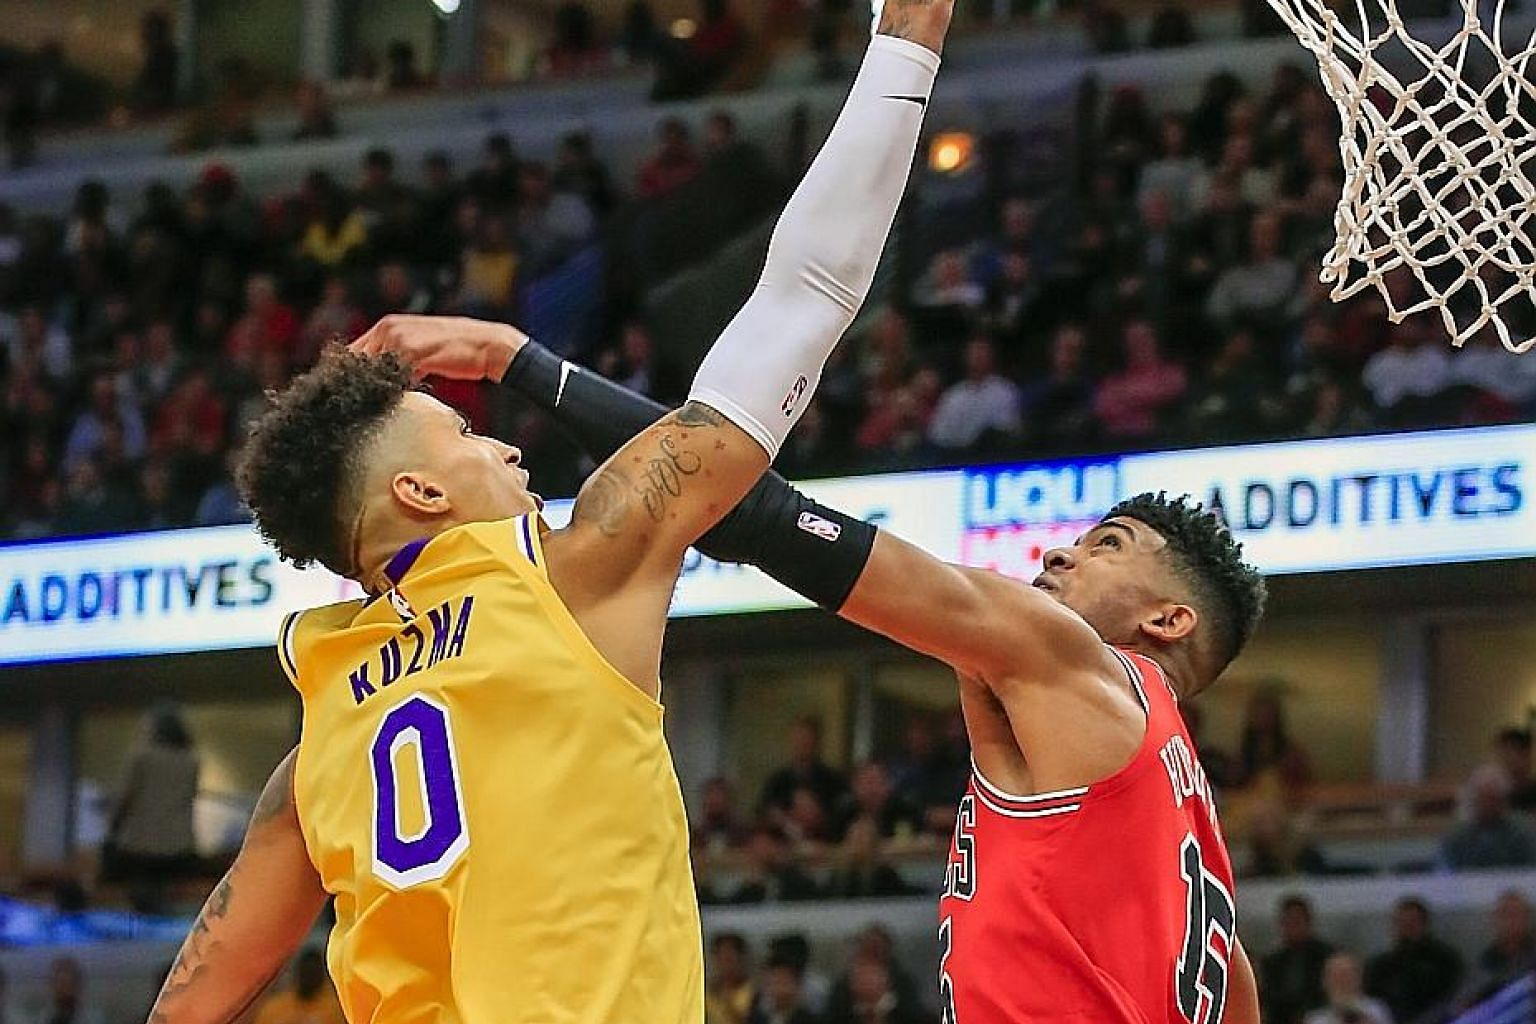 Lakers forward Kyle Kuzma shooting over Chicago Bulls' Chandler Hutchison to score two of his 15 points in their NBA game at the United Centre on Tuesday. Los Angeles' 118-112 win was their third straight away victory.